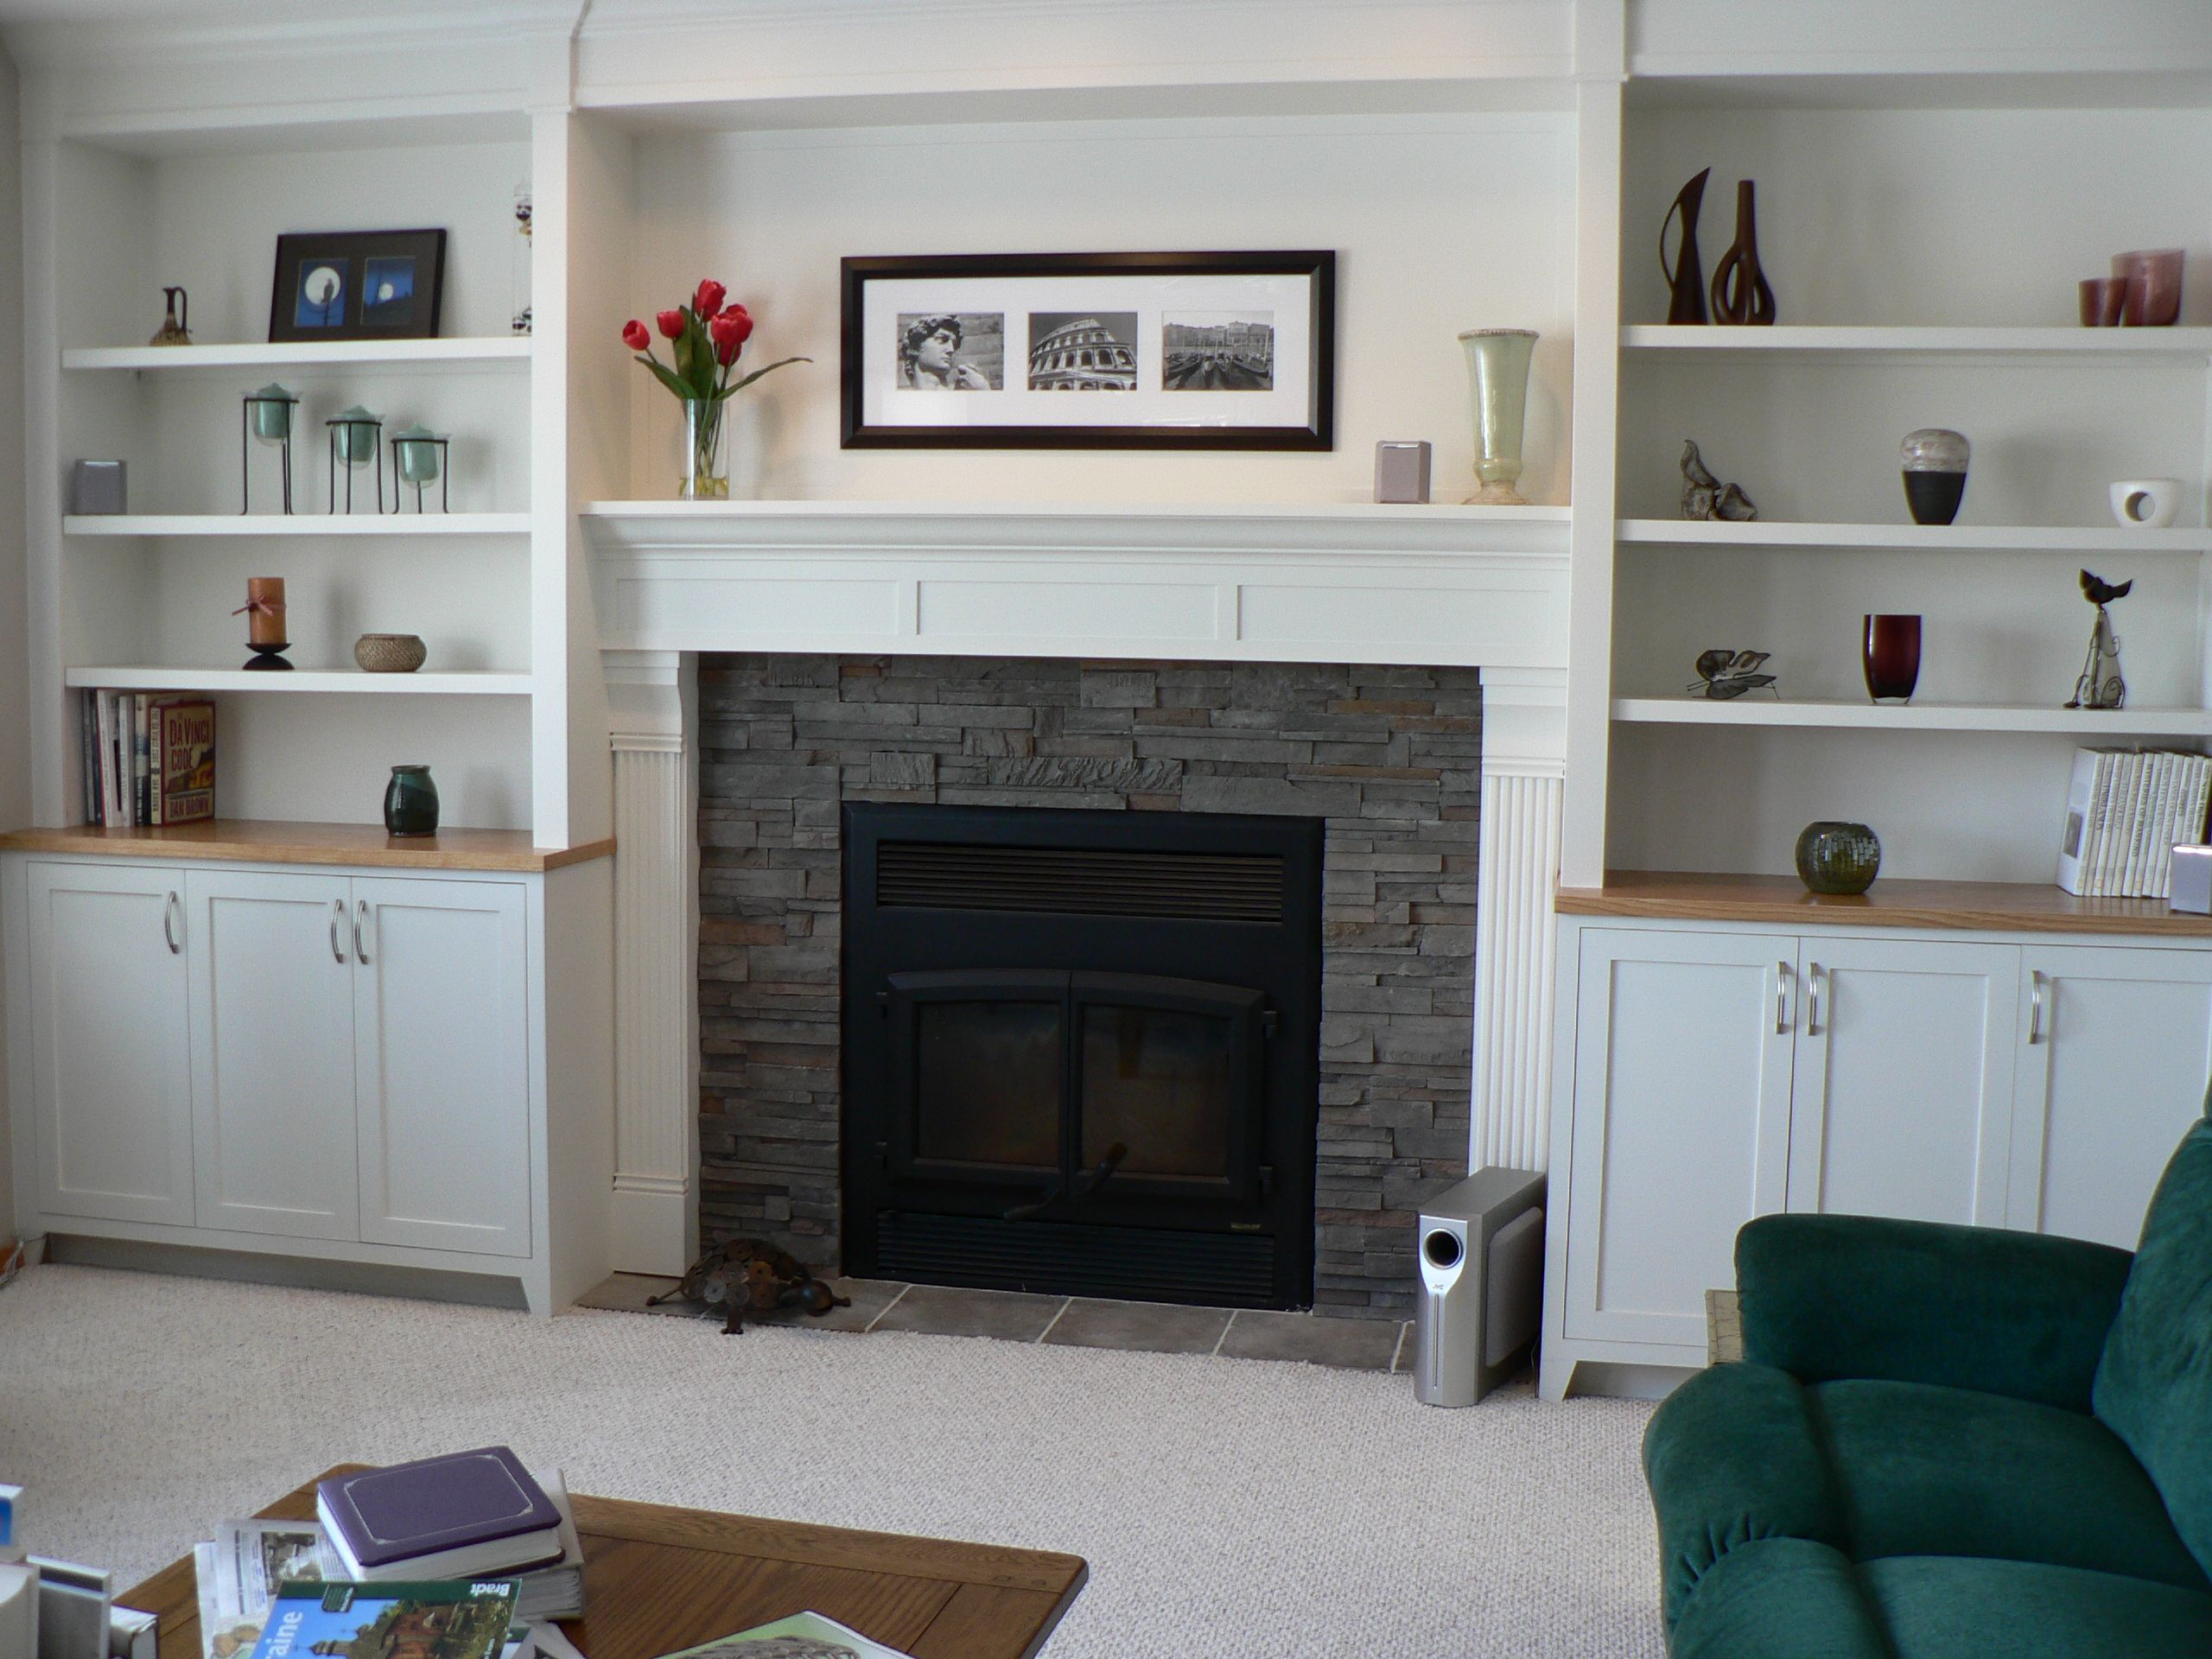 Fireplace Mantle And Surround With Cabinets Shelves Fireplace